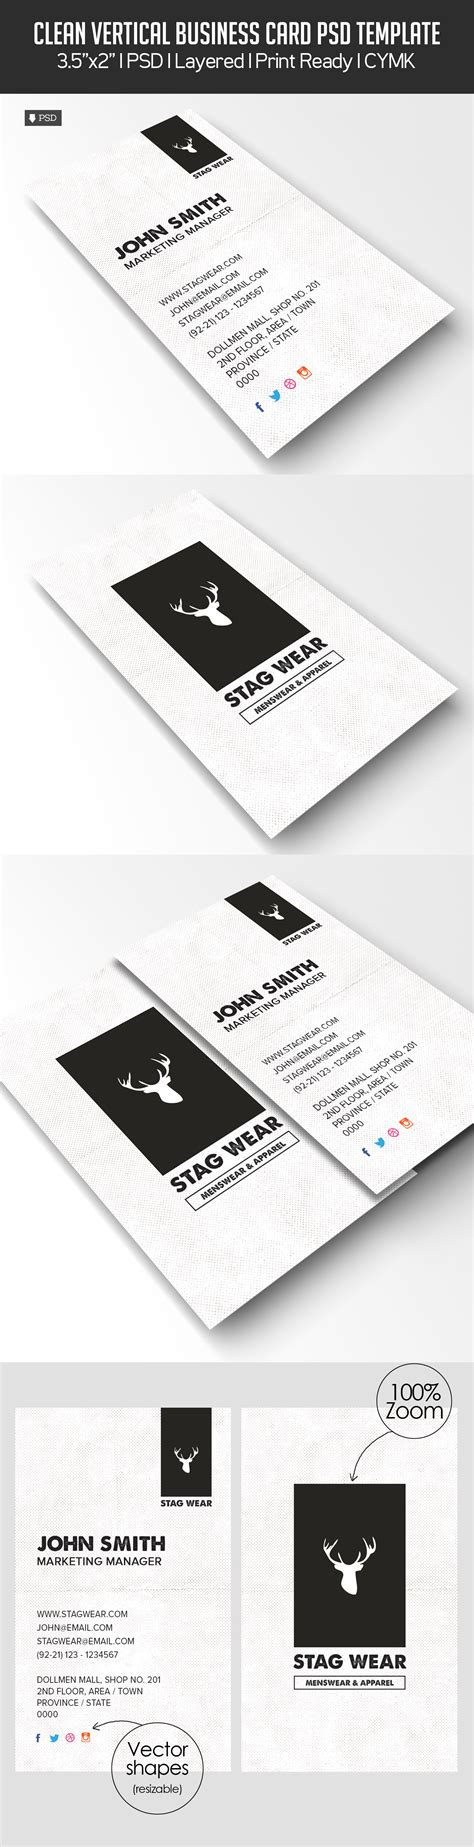 Business Card Vertical Template Free by Freebie Vertical Business Card Psd Template Freebies